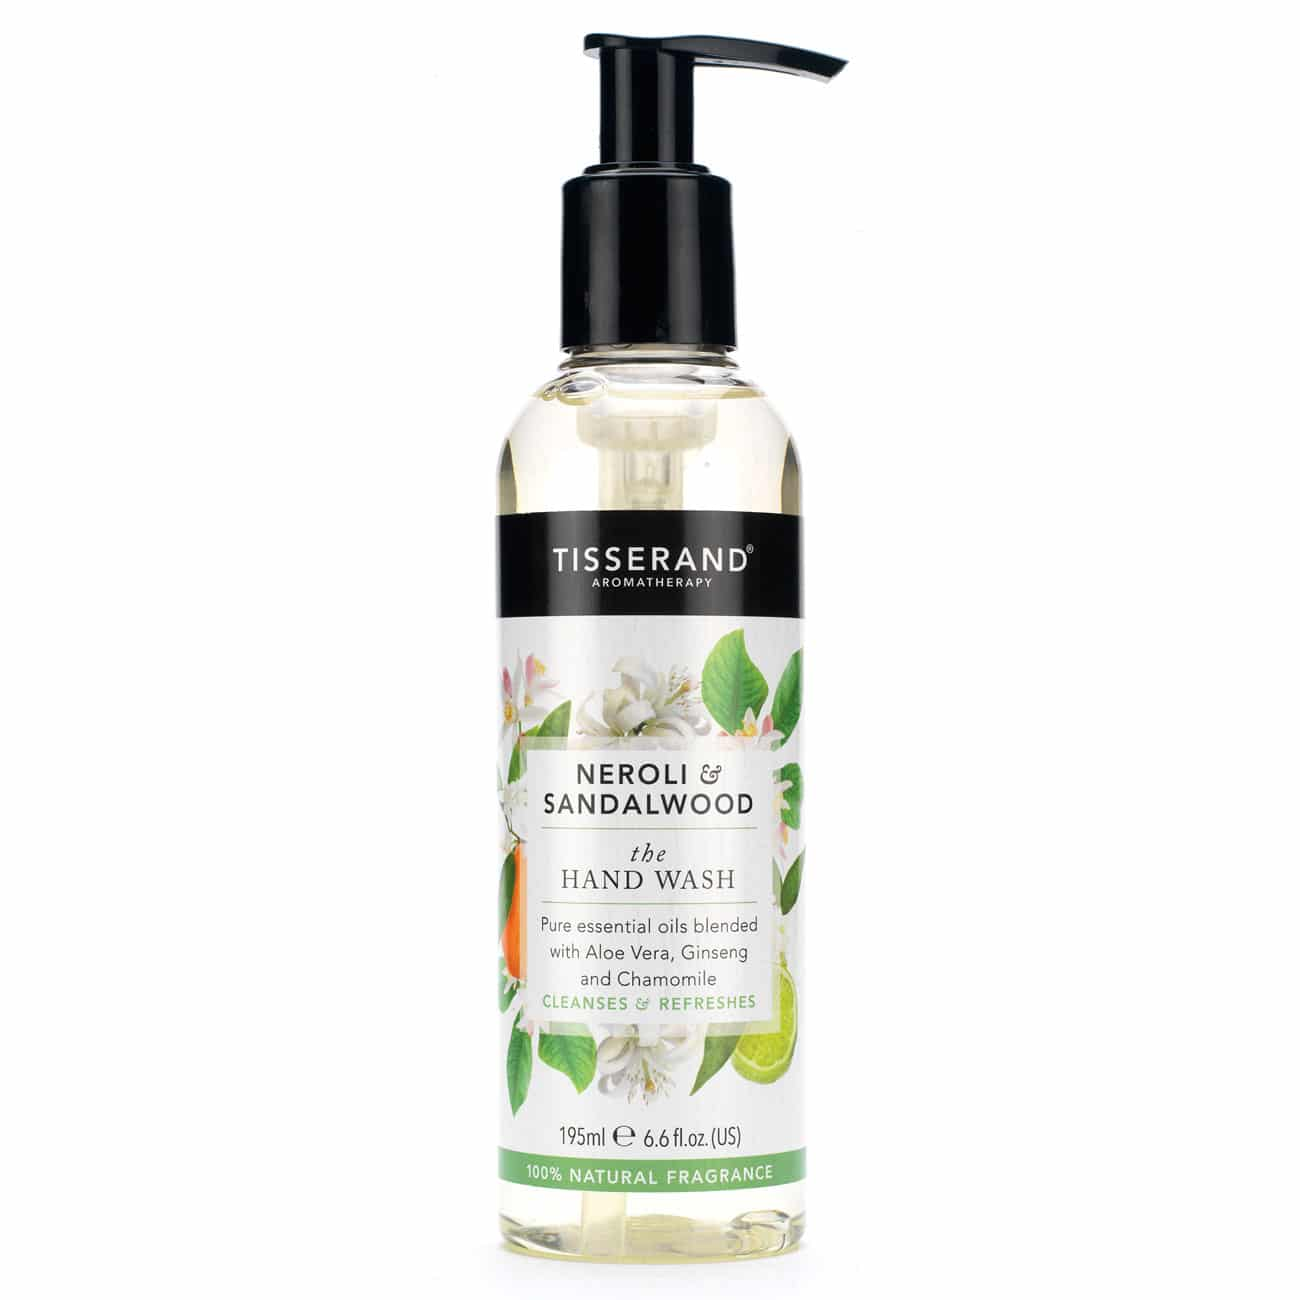 Tisserand-Aromatherapy-Neroli-and-Sandalwood-Hand-Wash